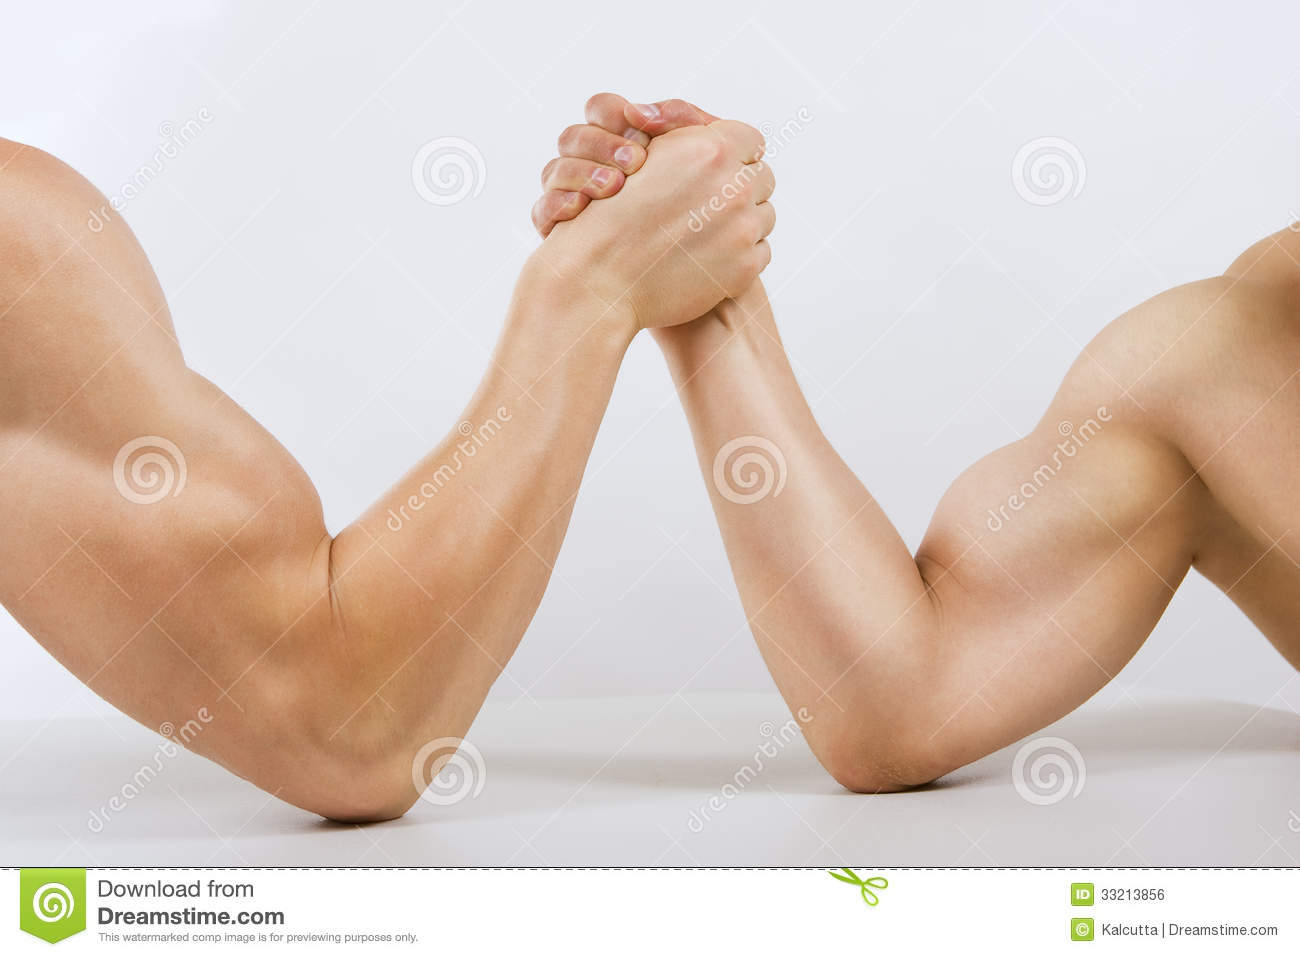 Two Muscular Hands Arm Wrestling Stock Photo - Image of ...